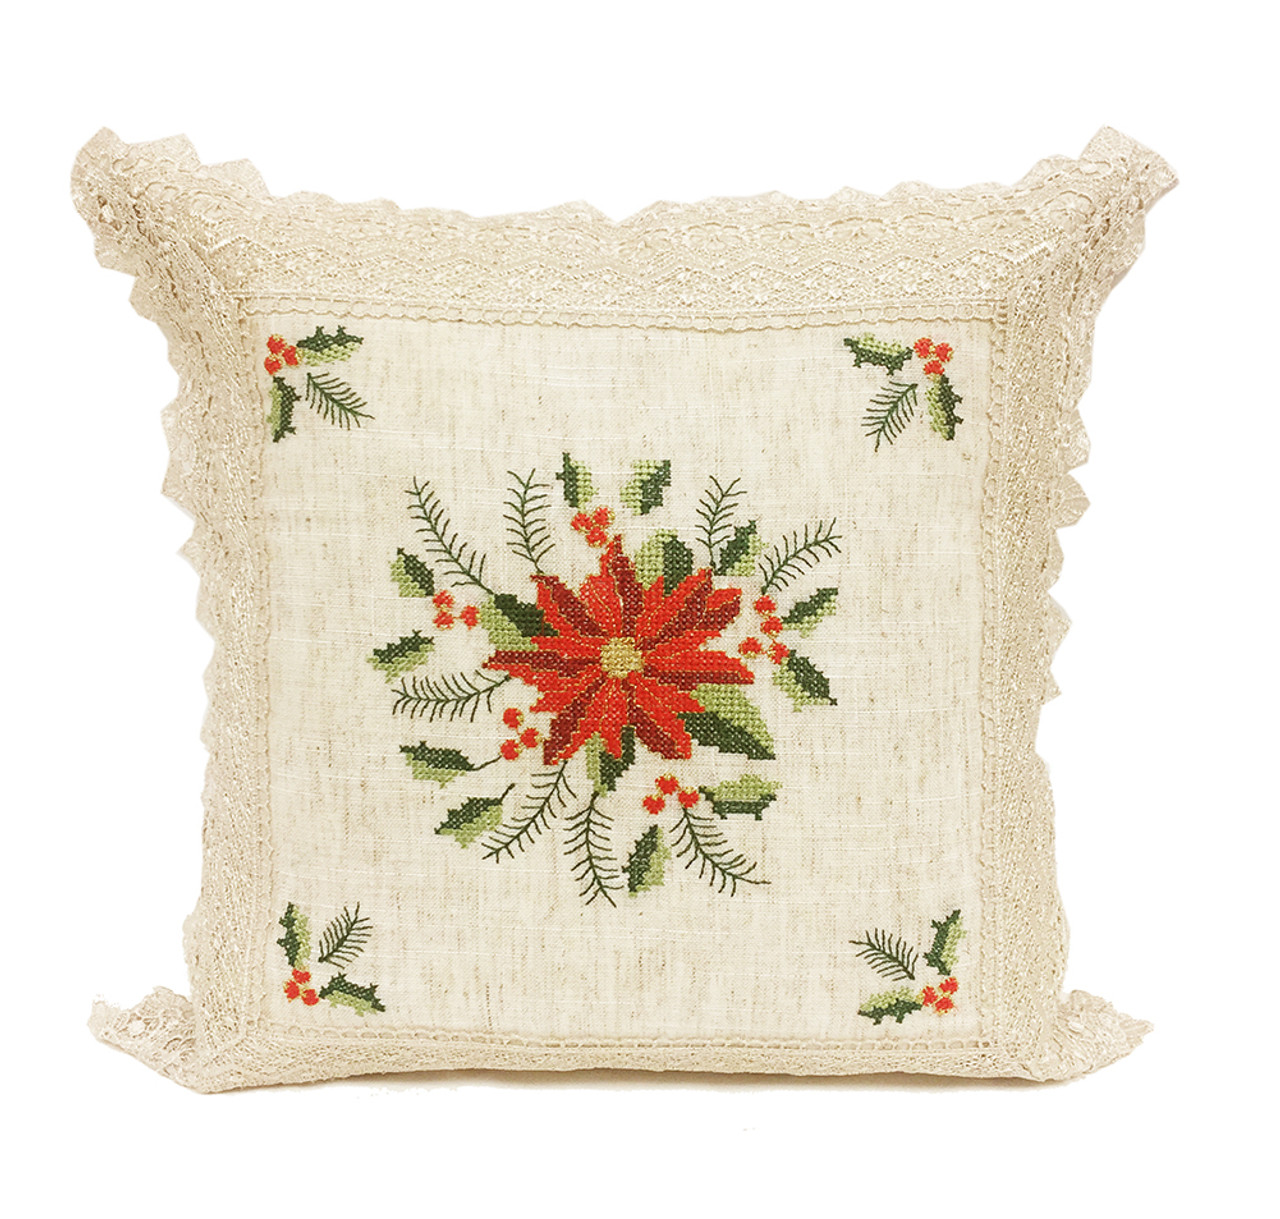 Fennco Styles Holiday Decor Collection Crochet Lace Poinsettia Tablecloth  Runner Pillow